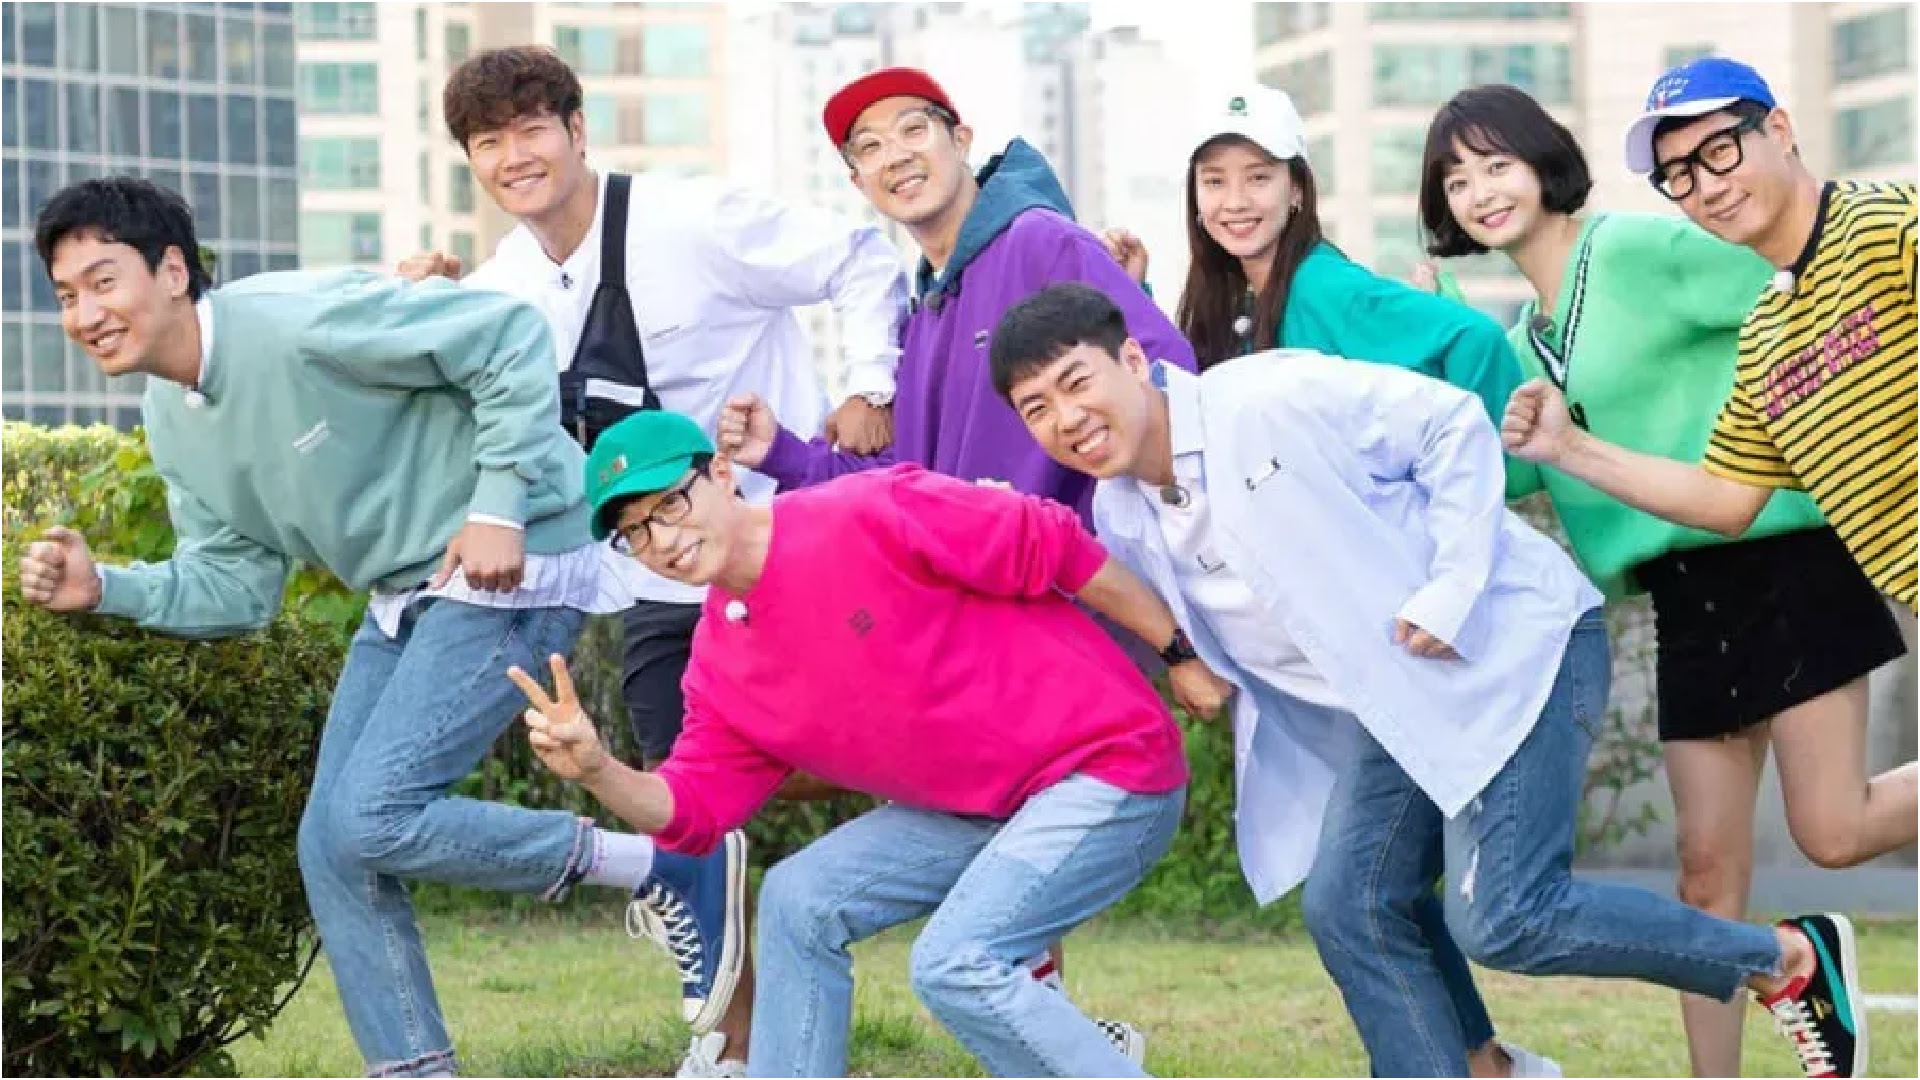 'Running Man': Who will replace Lee Kwang-soo after he leaves the show?